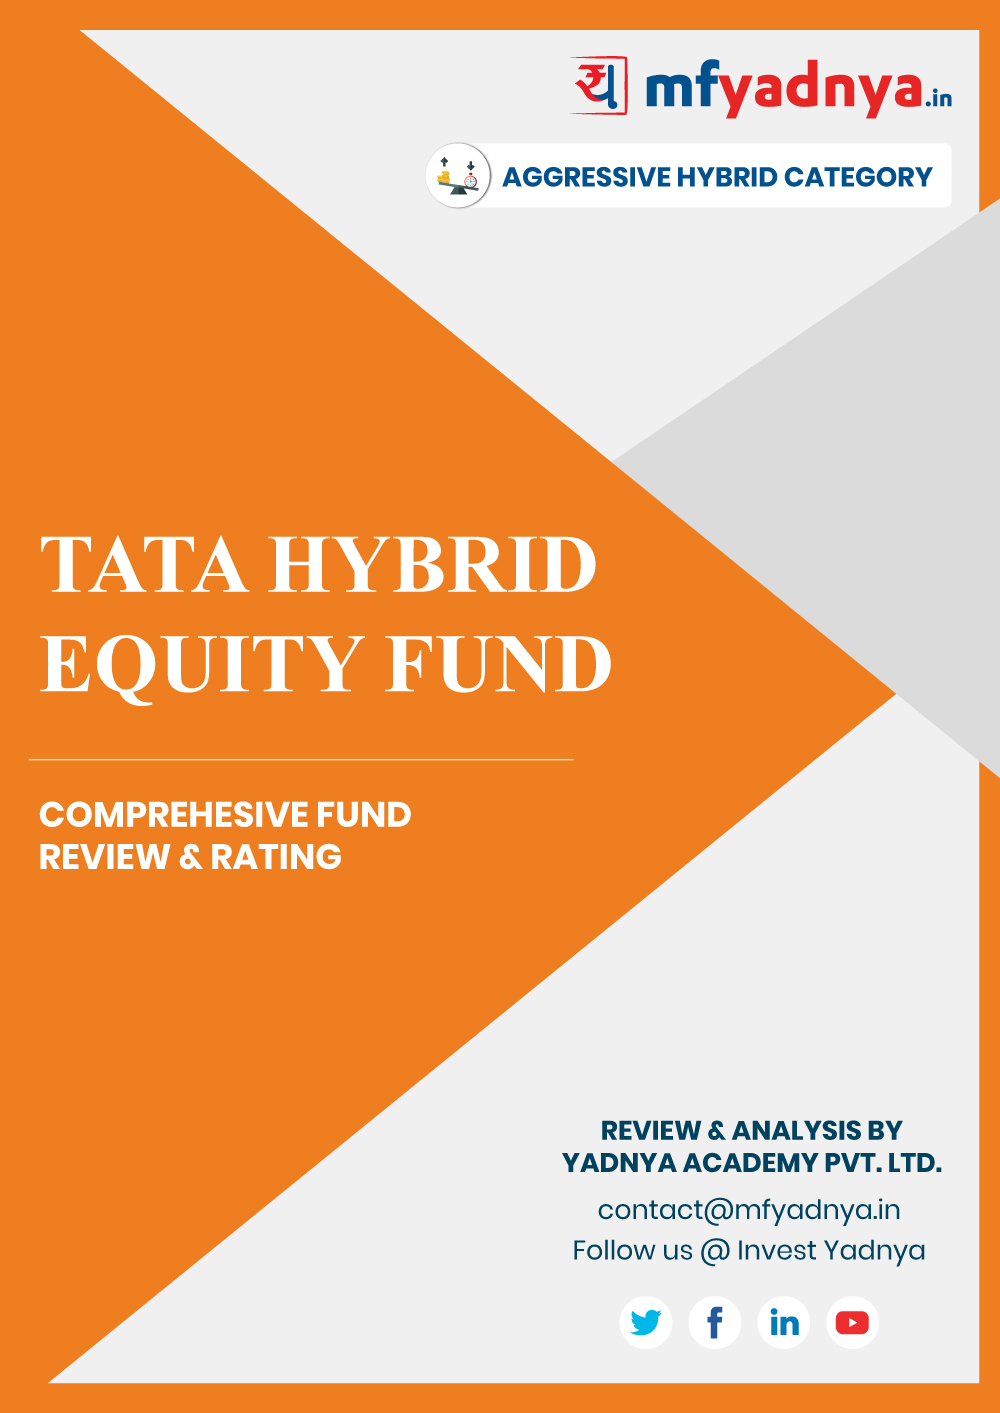 Aggressive Hybrid Category Review - 'TATA Hybrid Equity Fund'. Most Comprehensive and detailed MF review based on Yadnya's proprietary methodology of Green, Yellow & Red Star. Detailed Analysis & Review based on Feb 29th, 2020 data. Review also gives you the historical trend of the performance which will show fund's performance consistency.